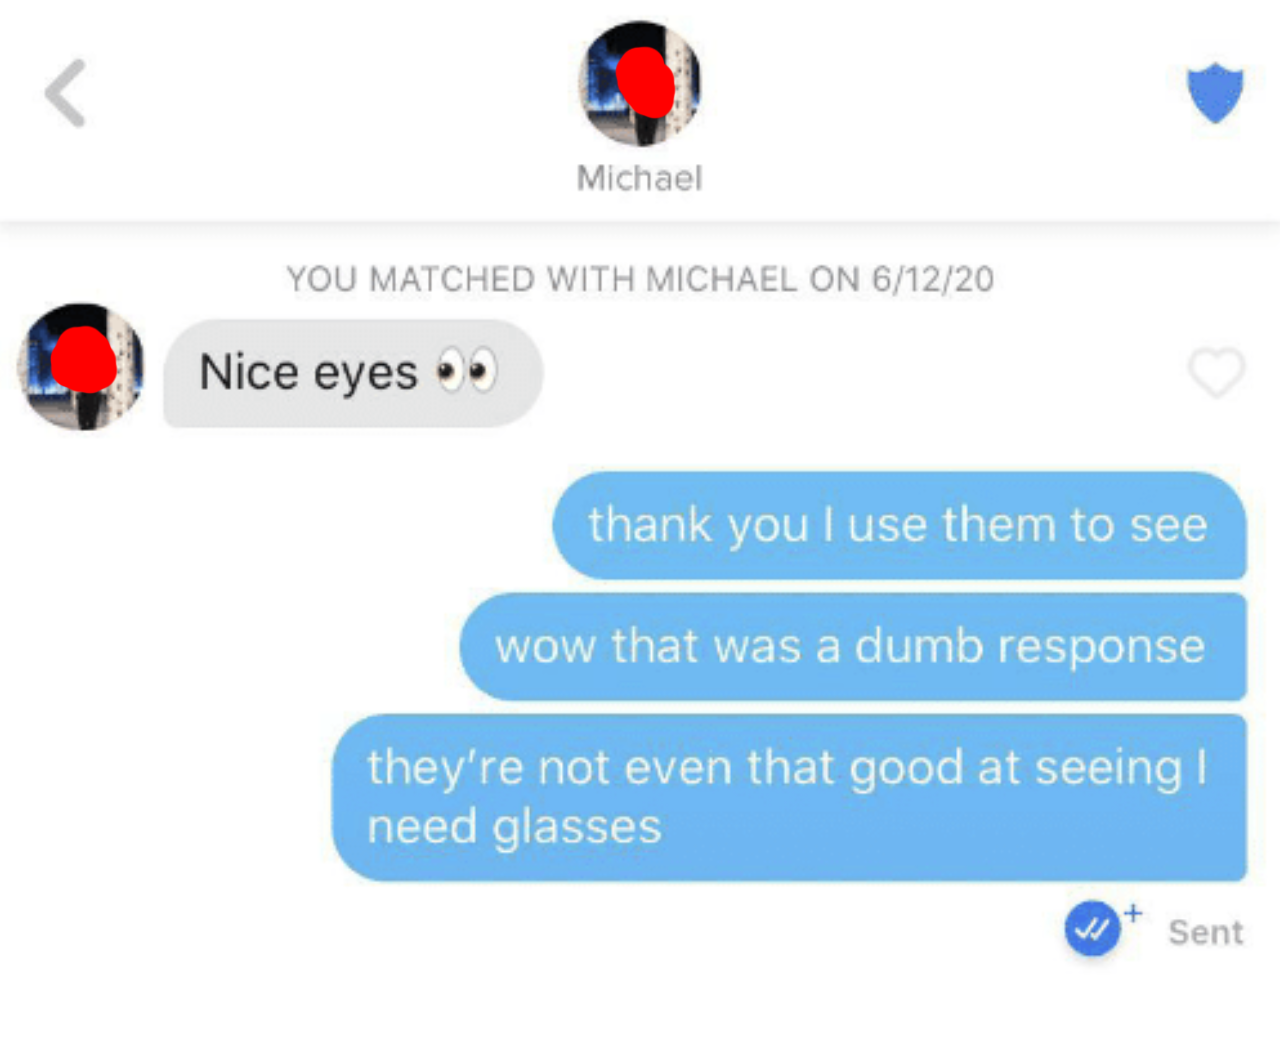 tindr conversation of someone saying nice eyes and the other person says i don't have nice eyes